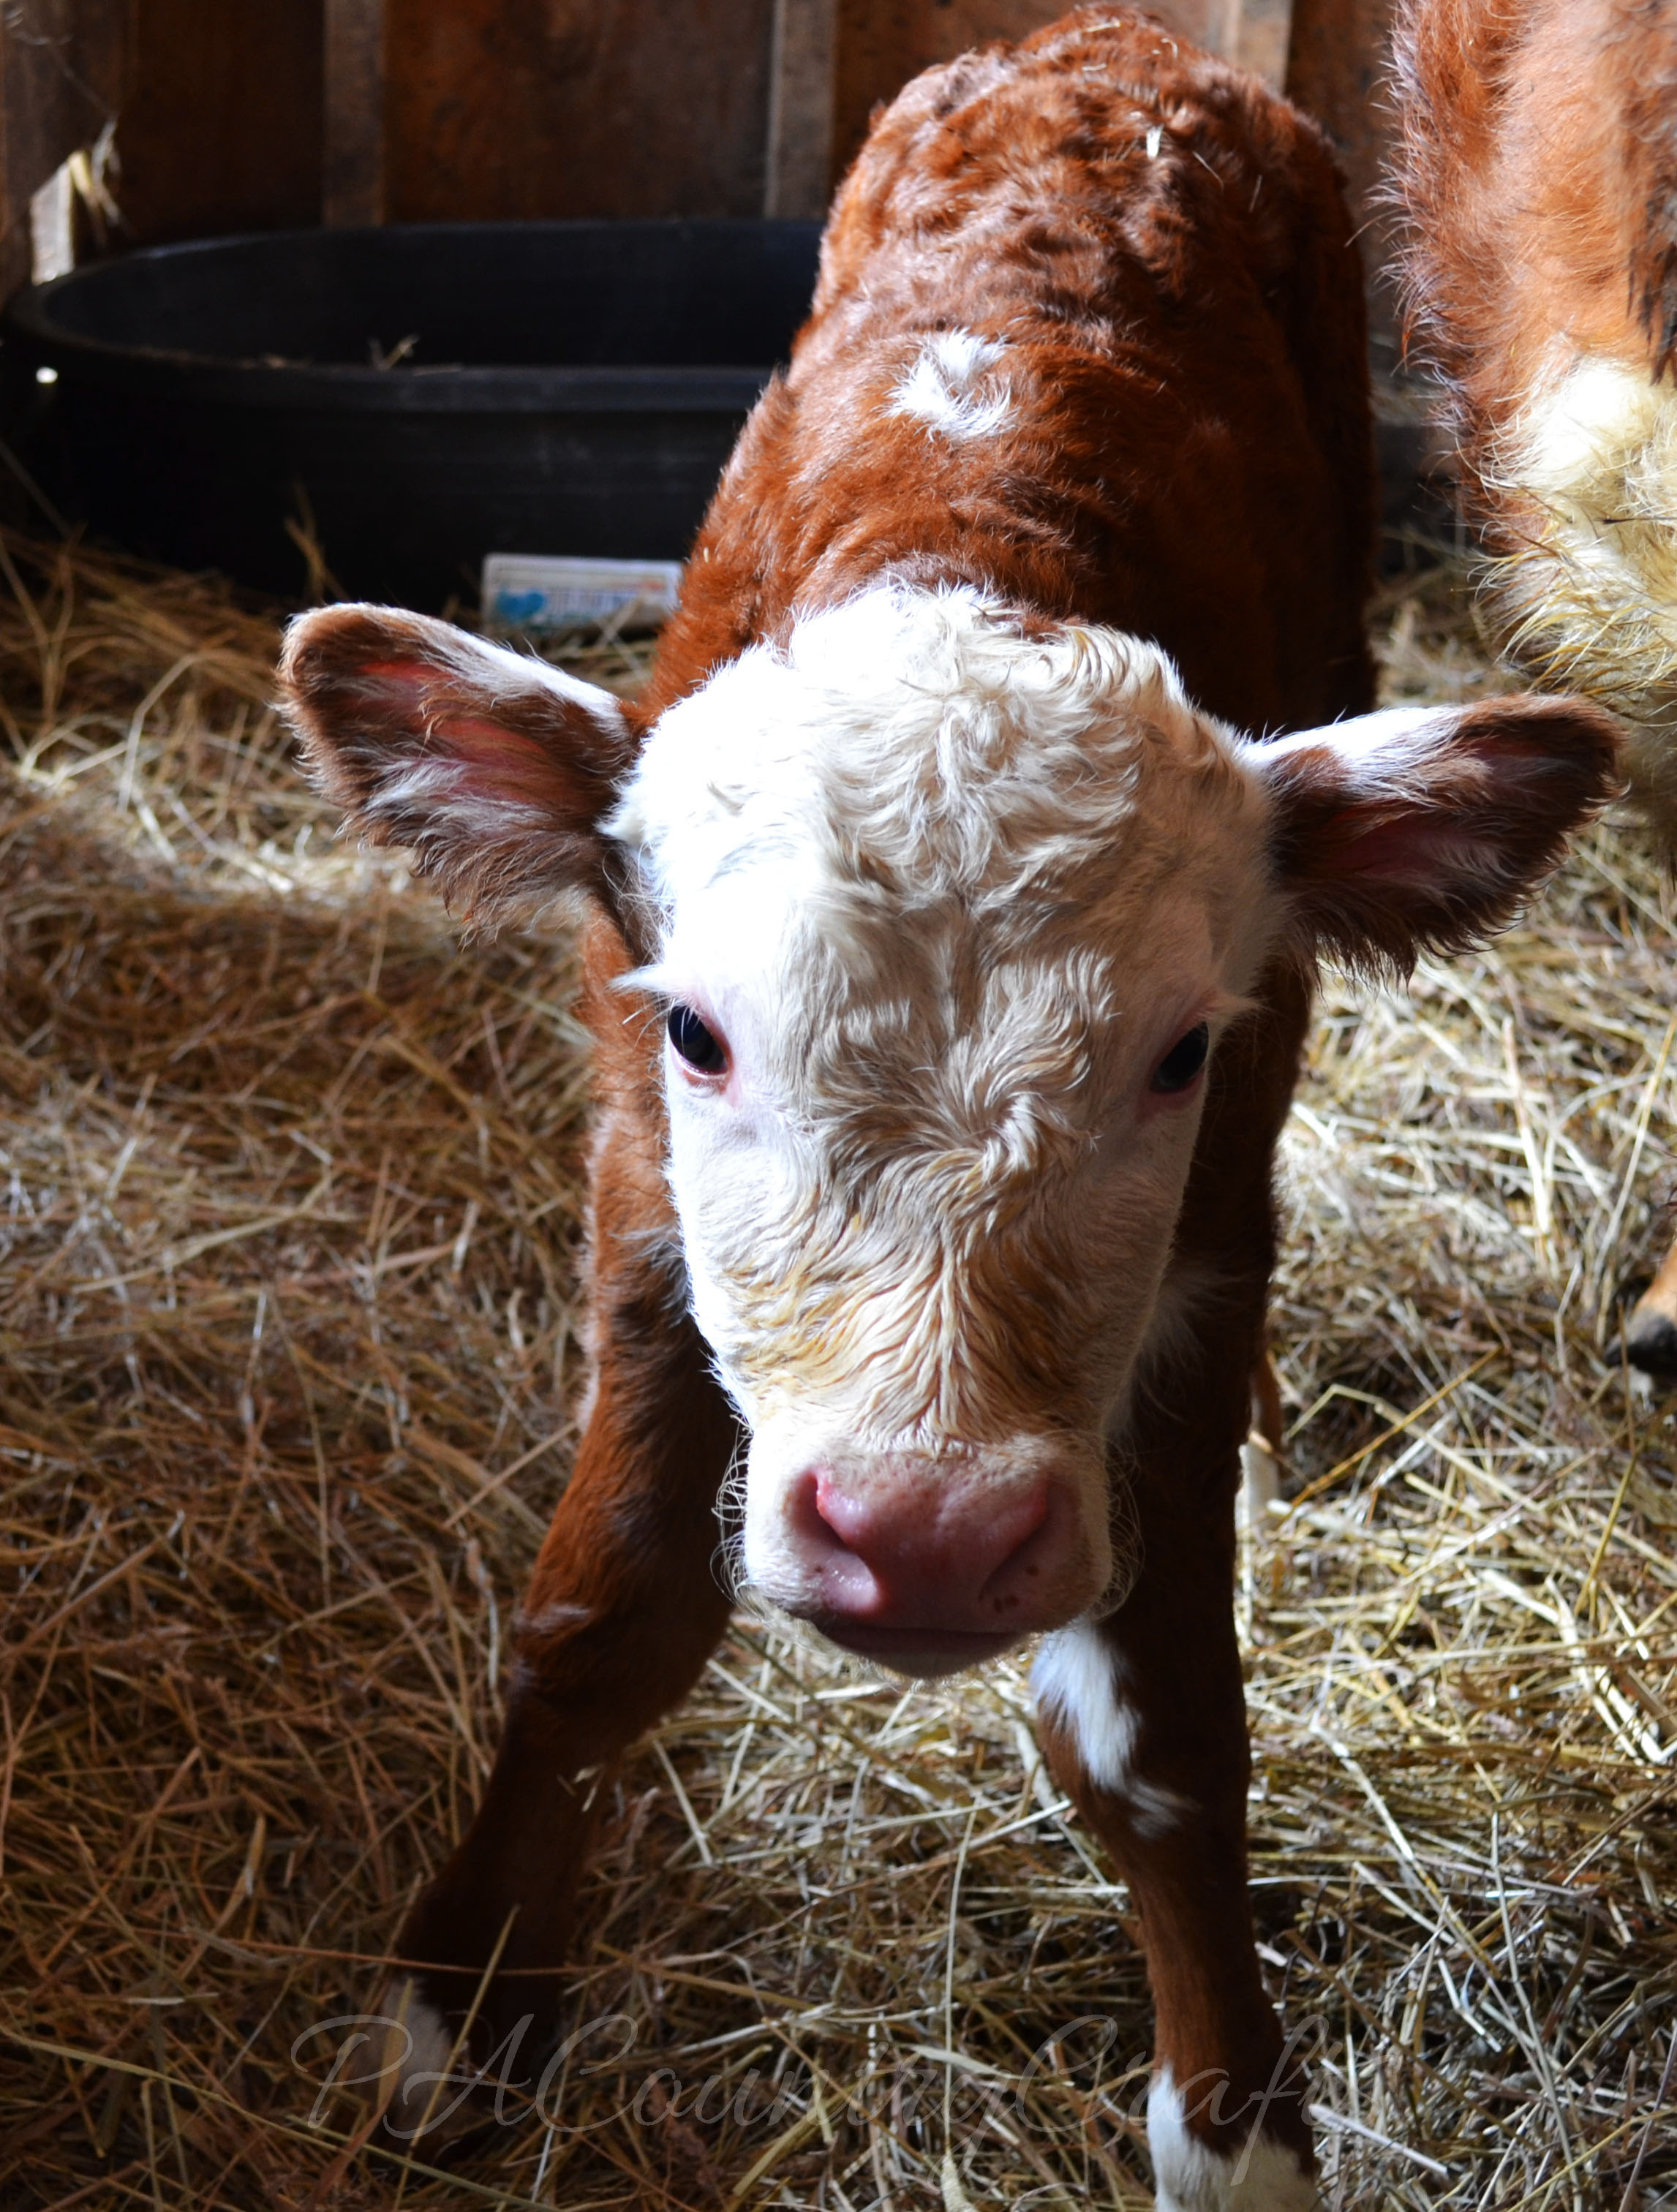 wobbly new calf standing